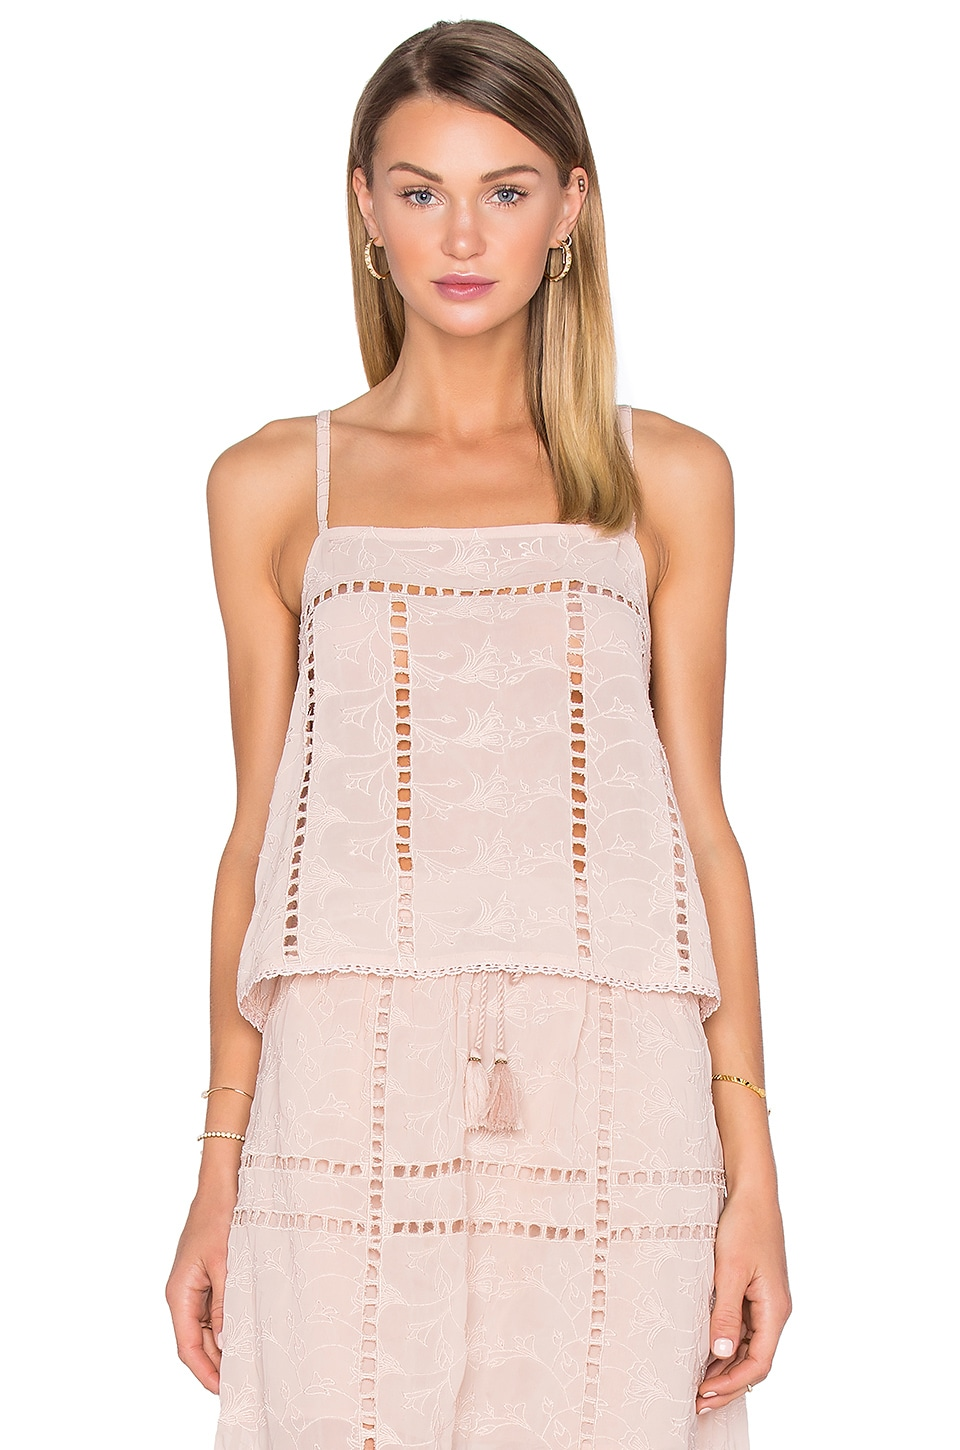 House of Harlow 1960 x REVOLVE Avery Crop in Taupe